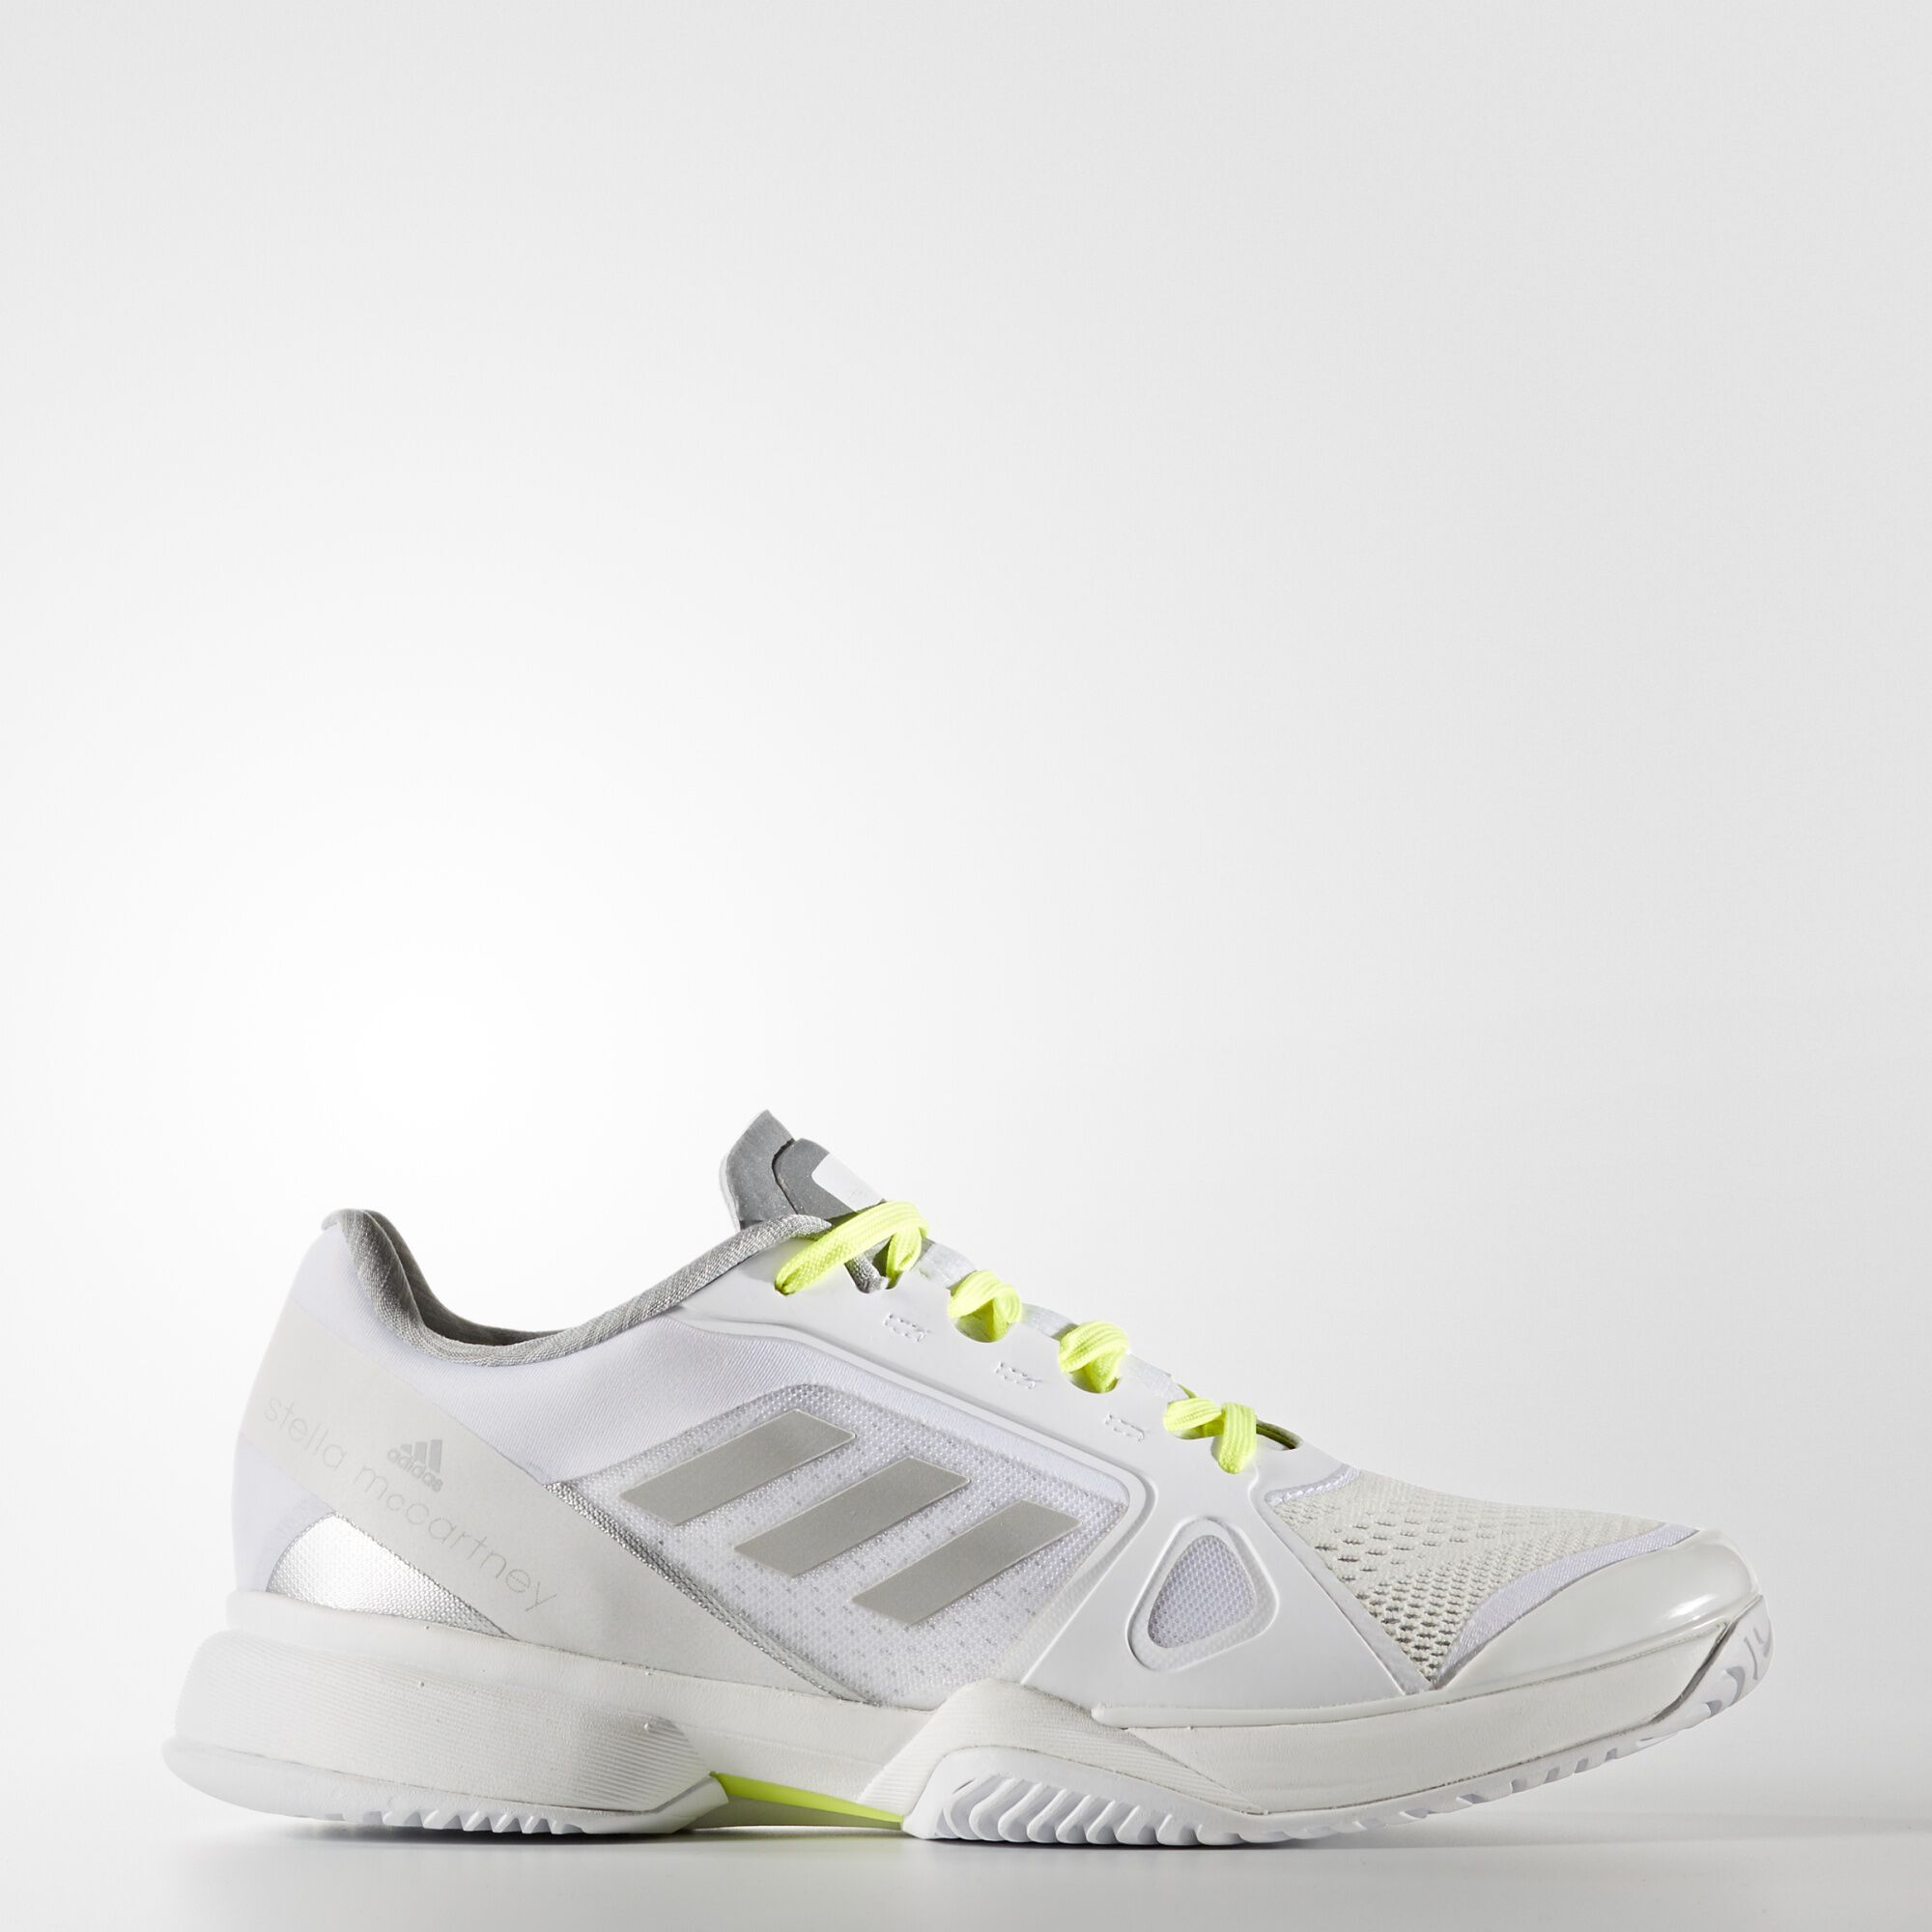 Adidas Shoes Women White 2017